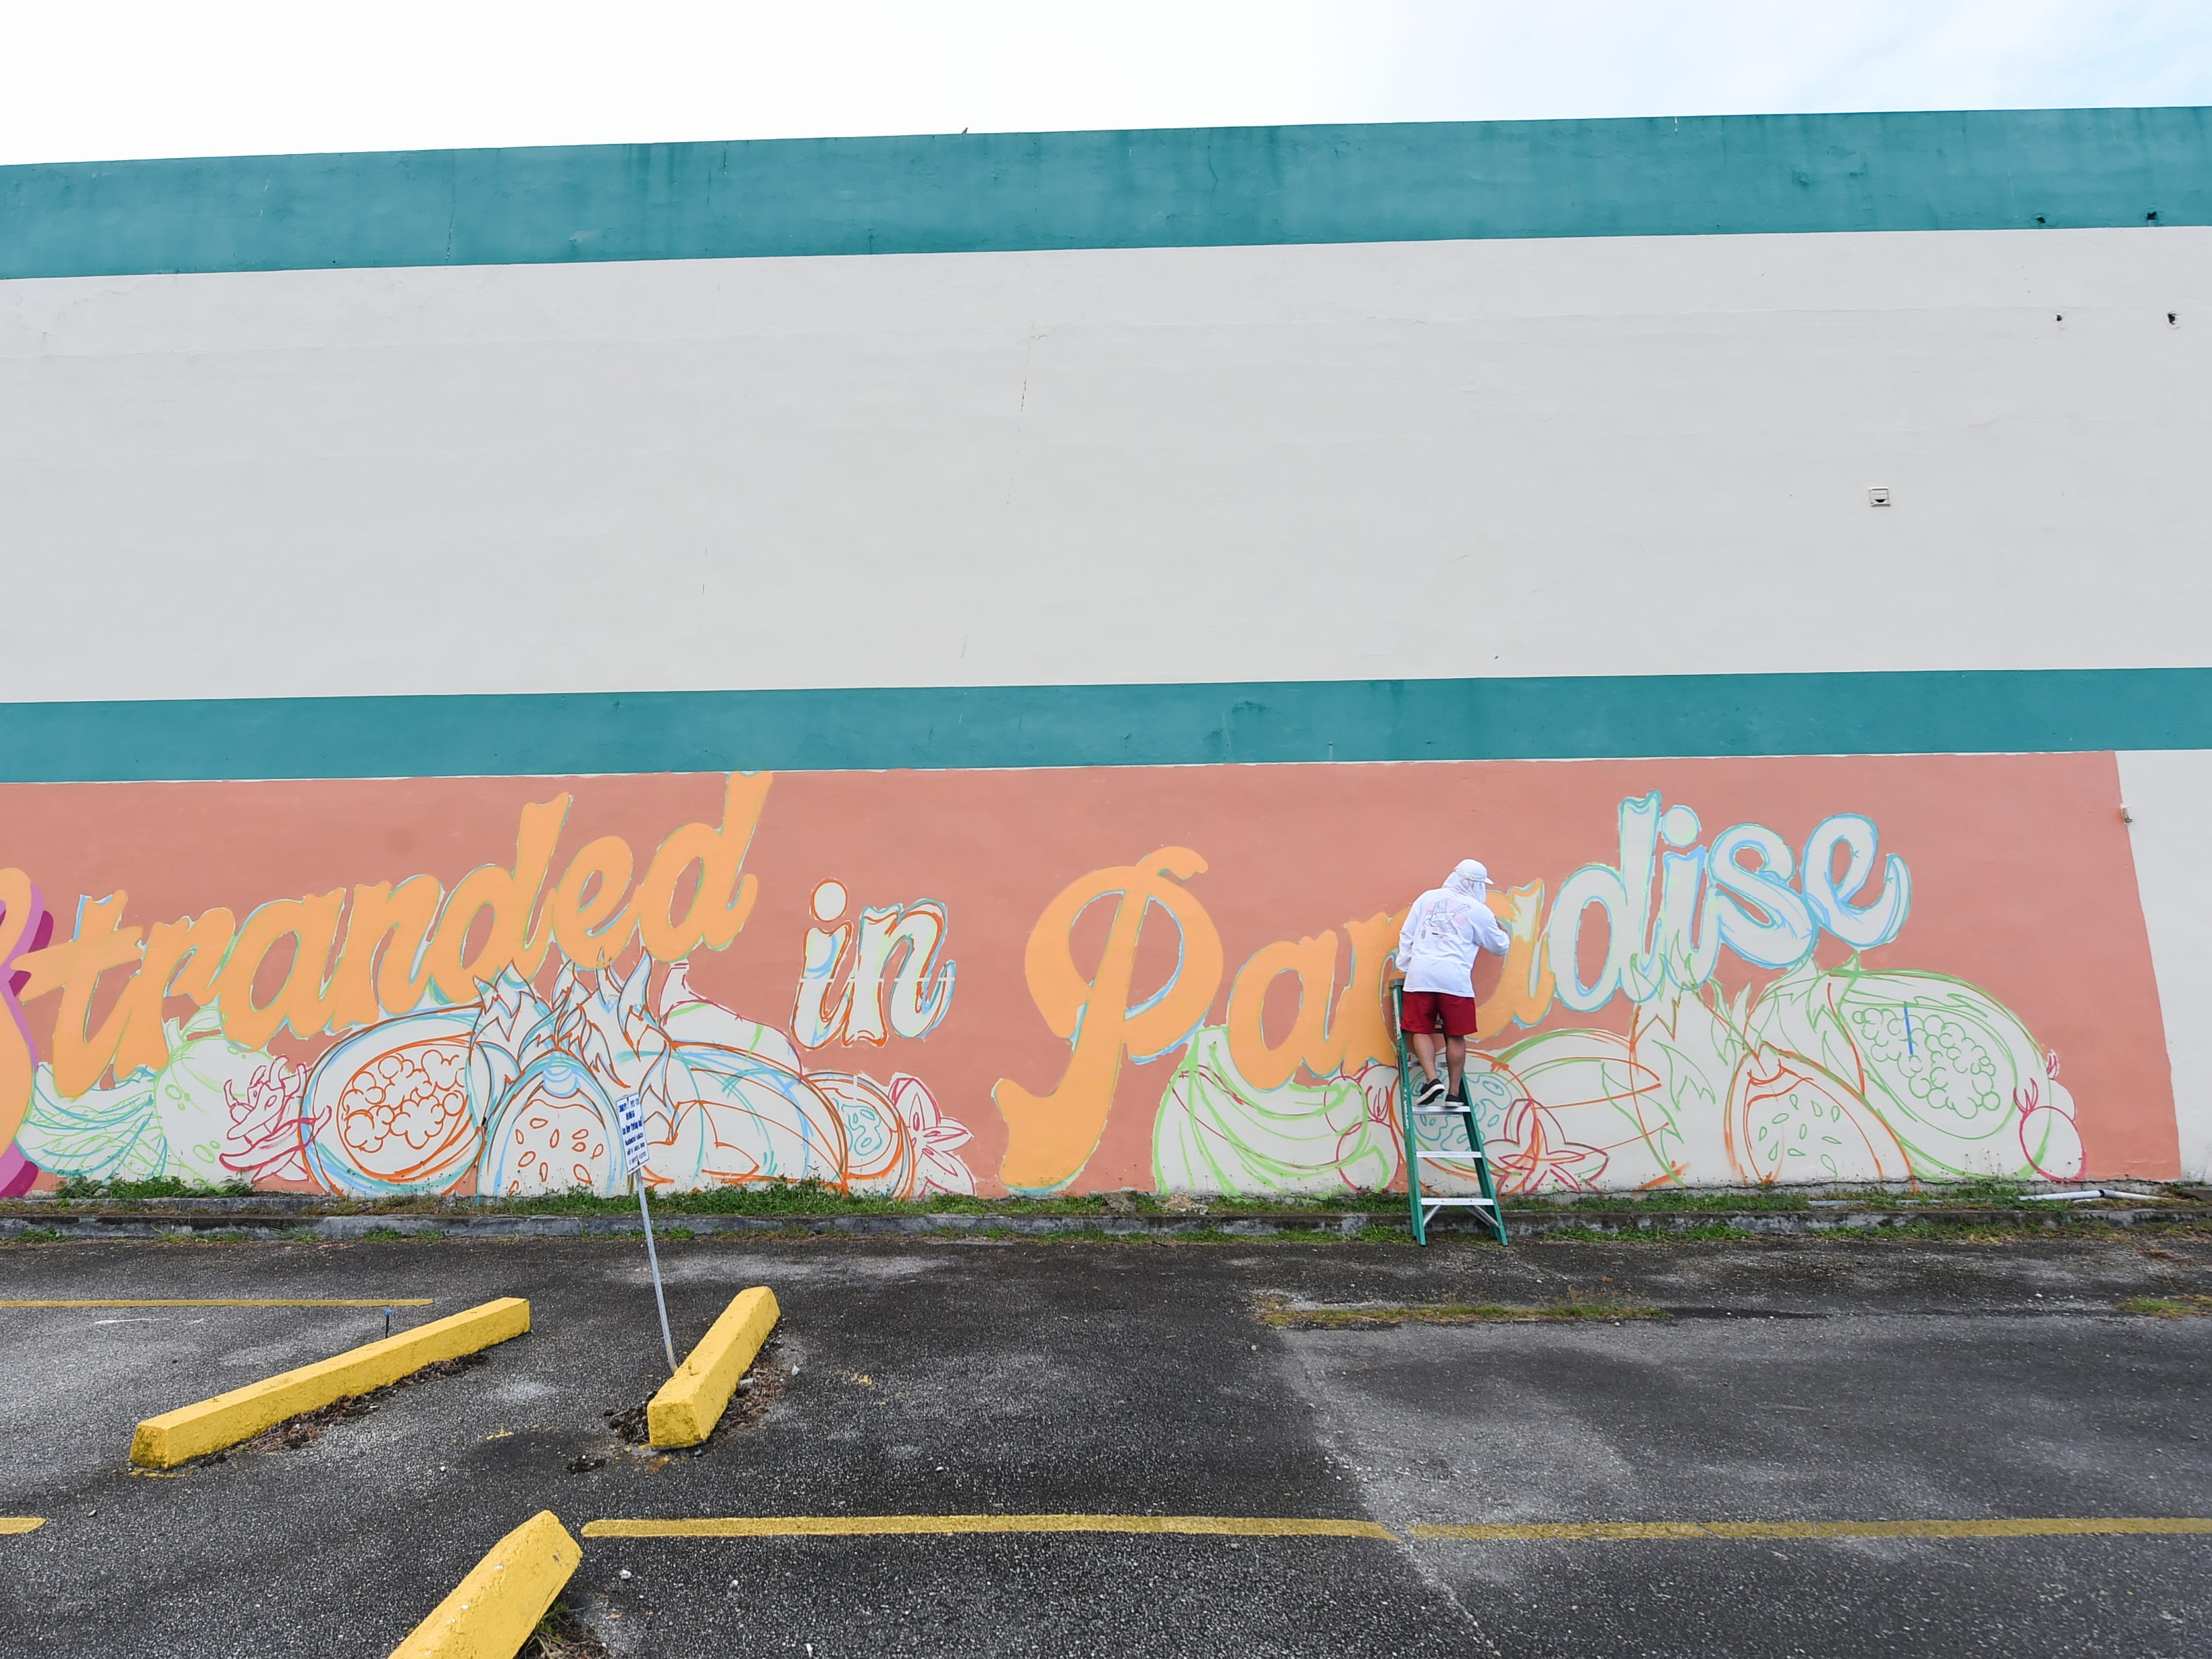 """Jerome Daco, an Opake Guam graphic artist, starts his company's """"Stranded in Paradise"""" mural for the GAX POW!WOW! Guam series in Hagåtña on April 14, 2019."""